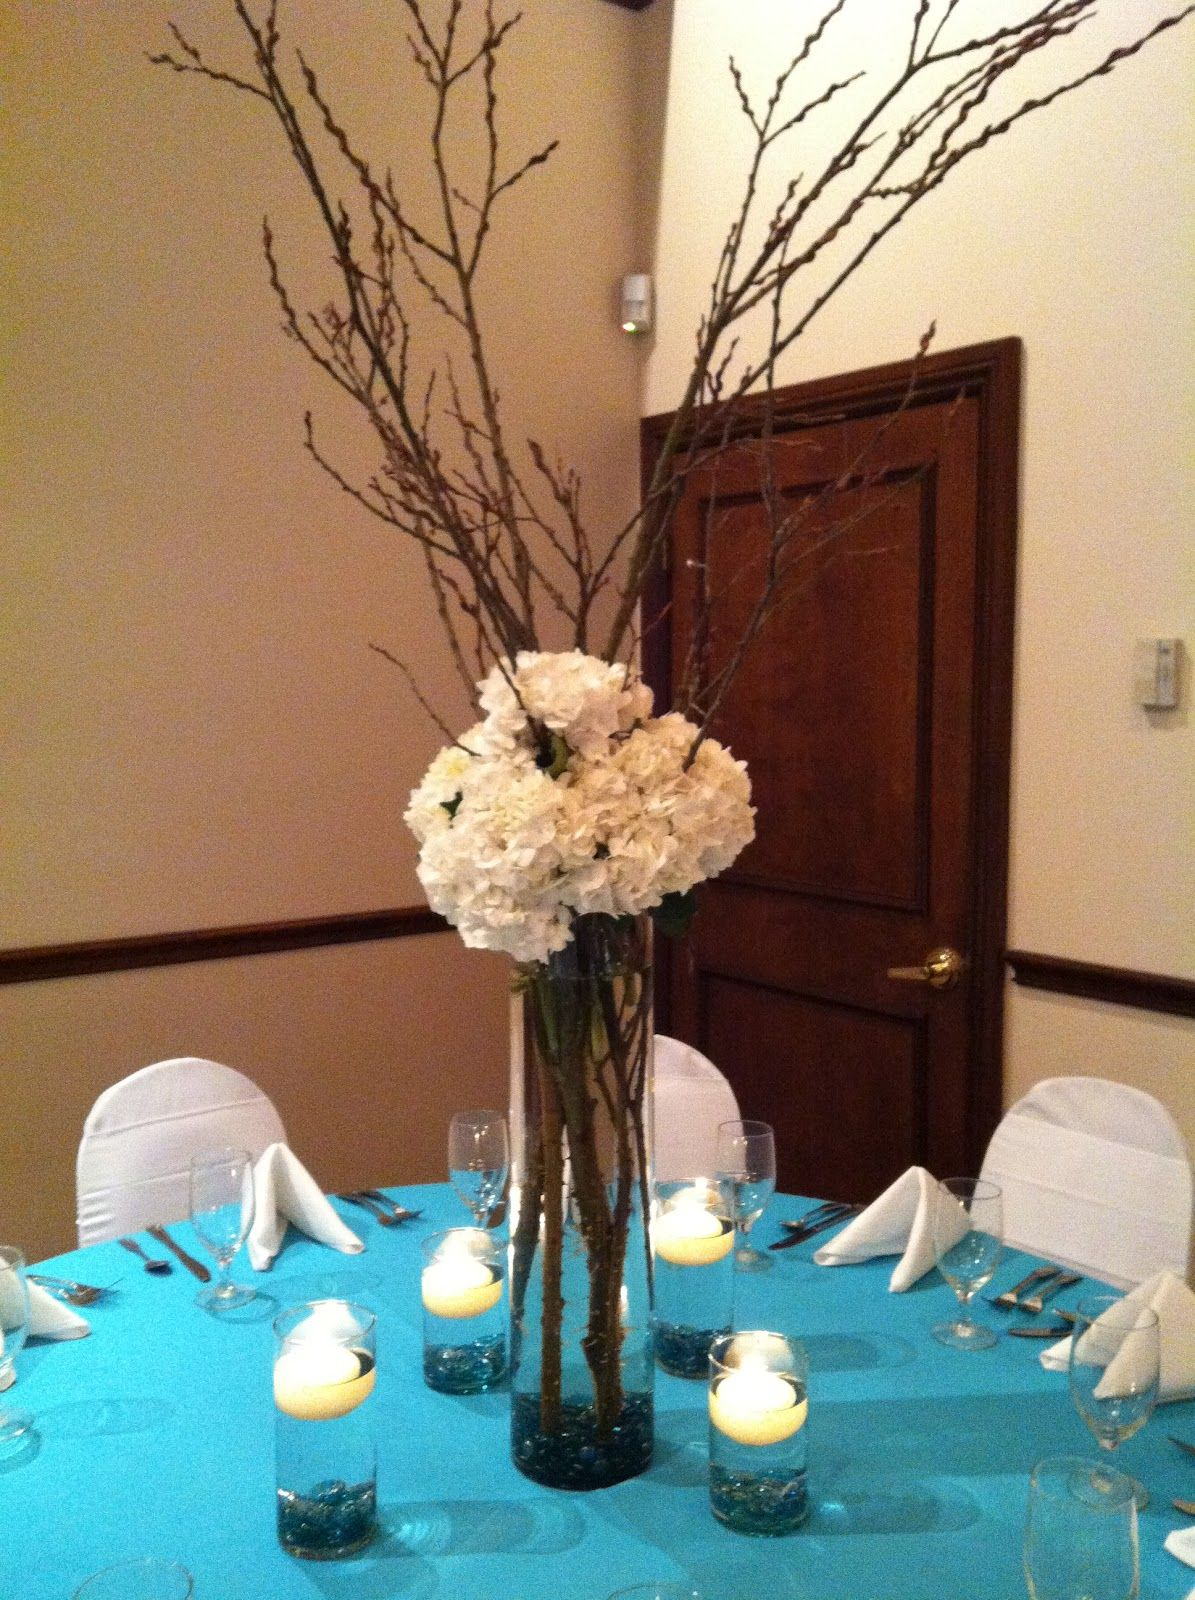 Pictures Of Inexpensive Wedding Centerpieces Flower Centerpiece